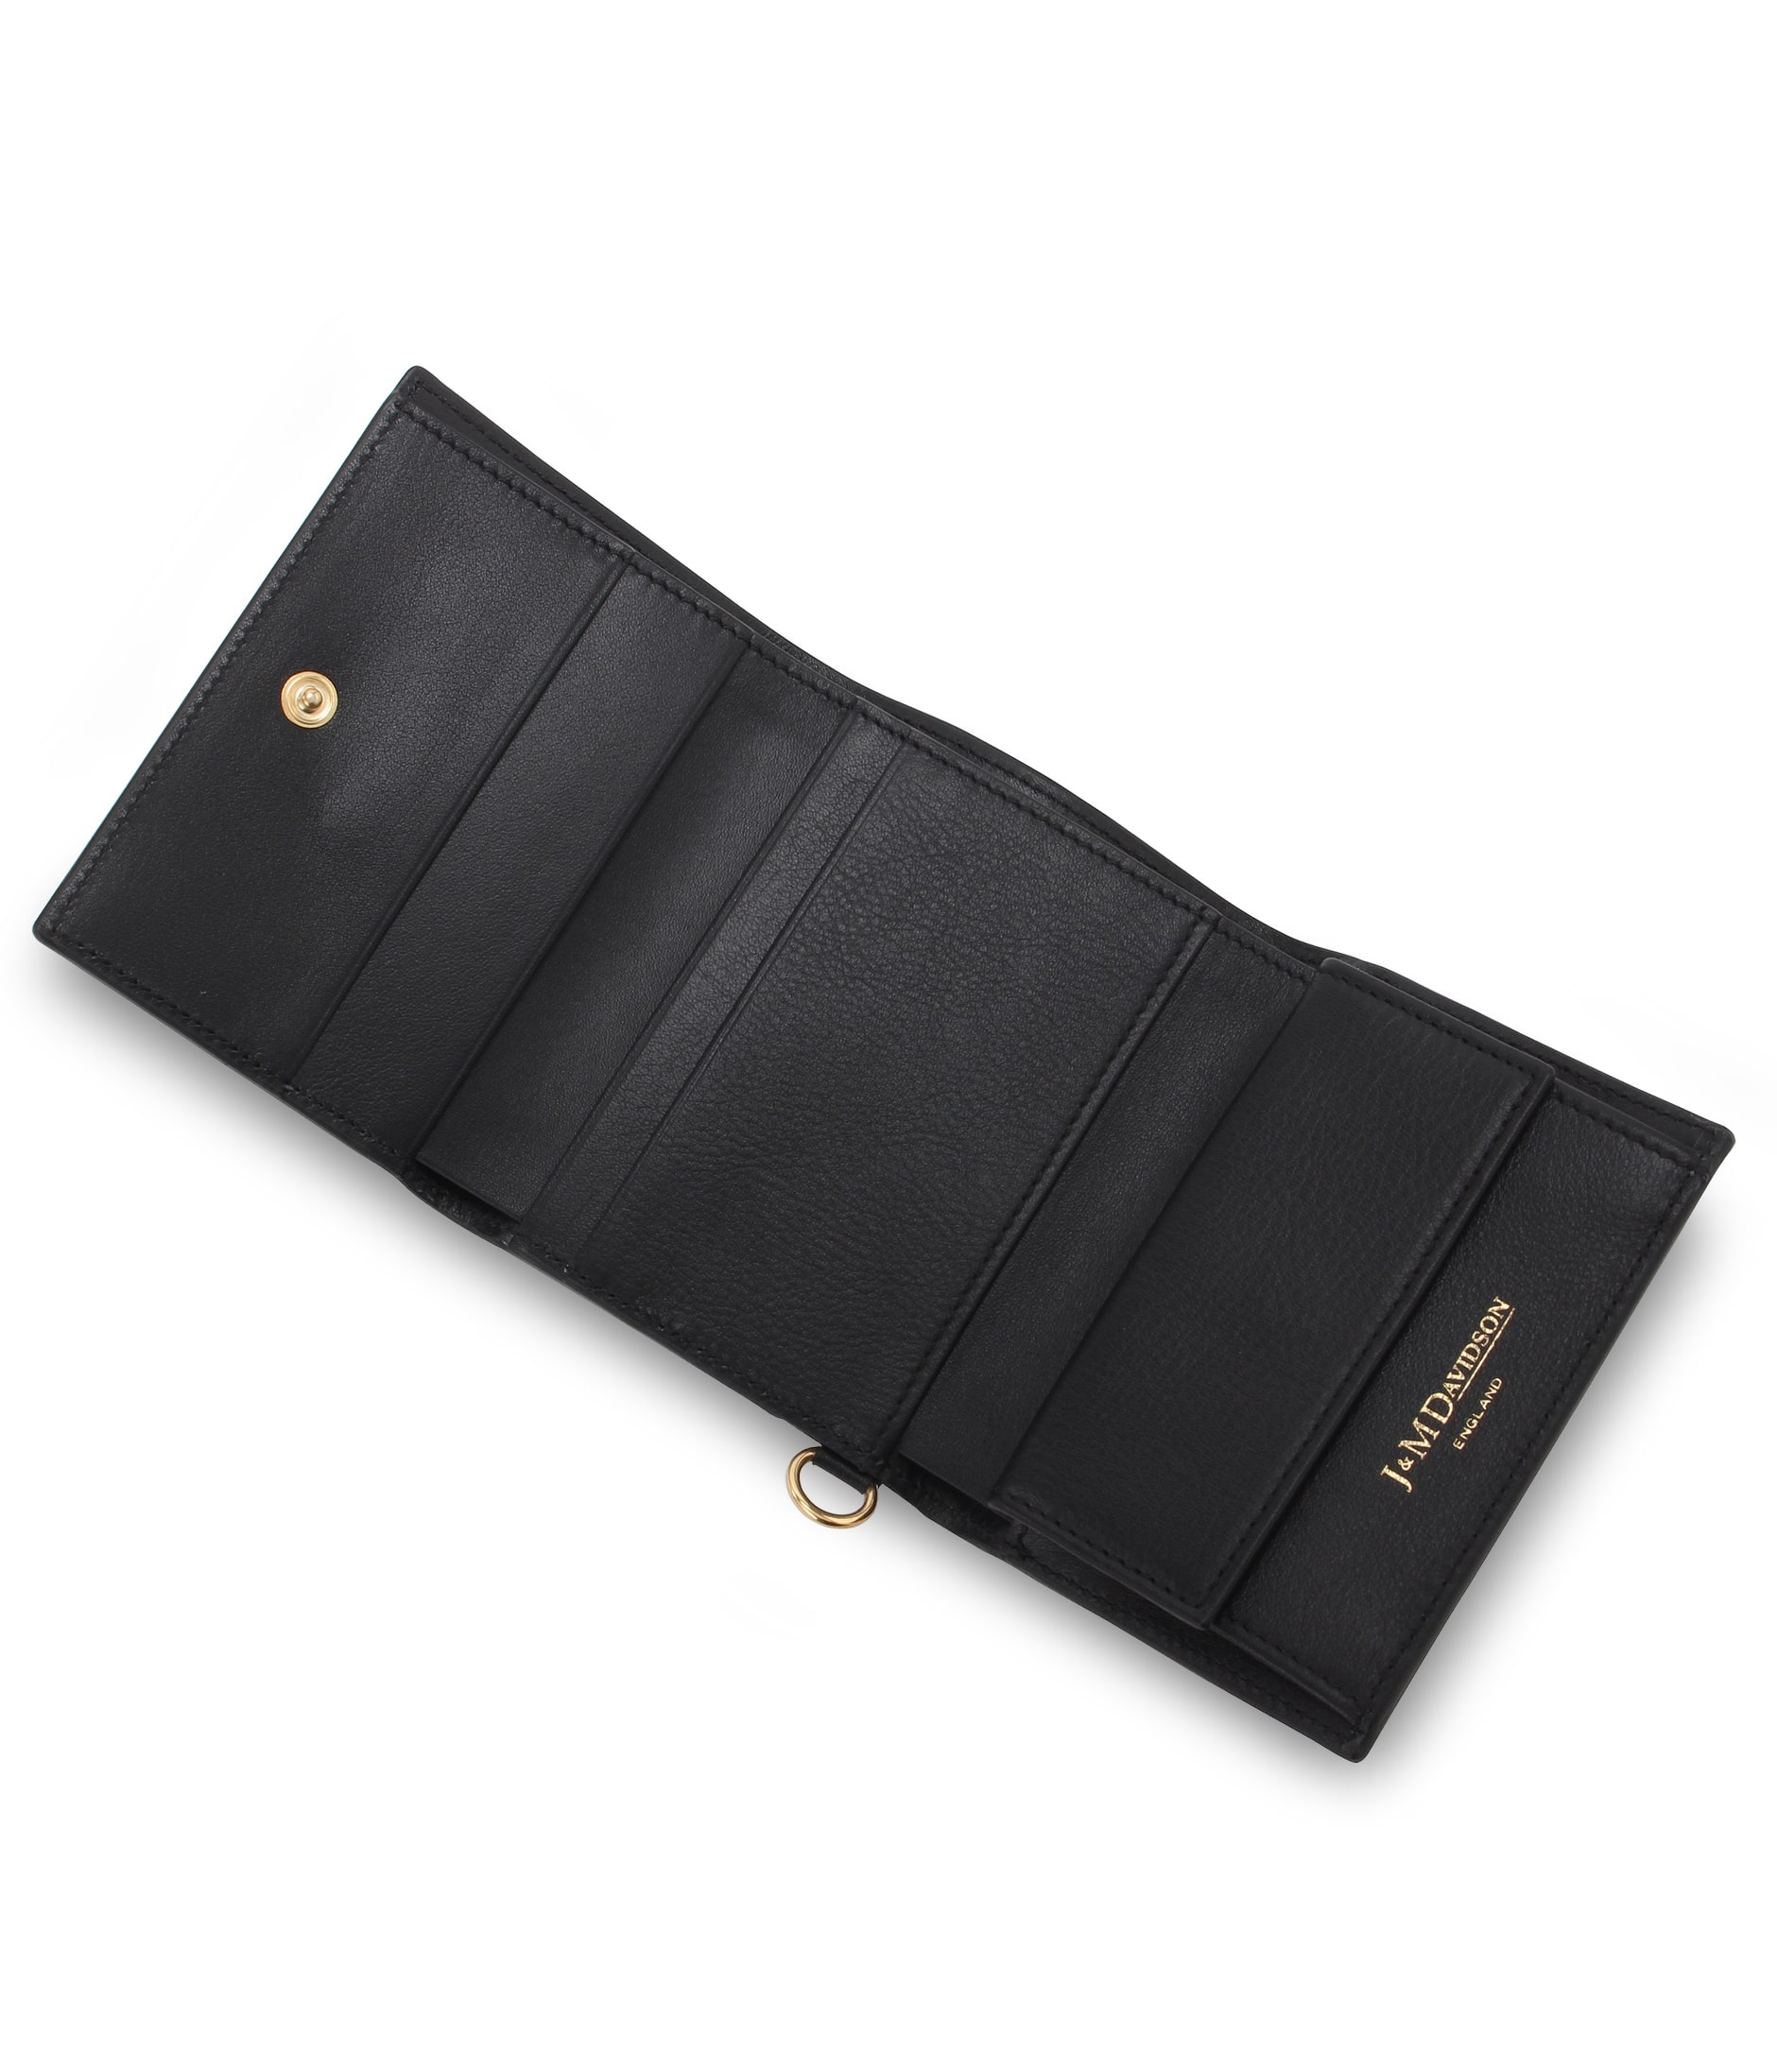 FOLDED WALLET WITH STUDS 詳細画像 BLACK 6